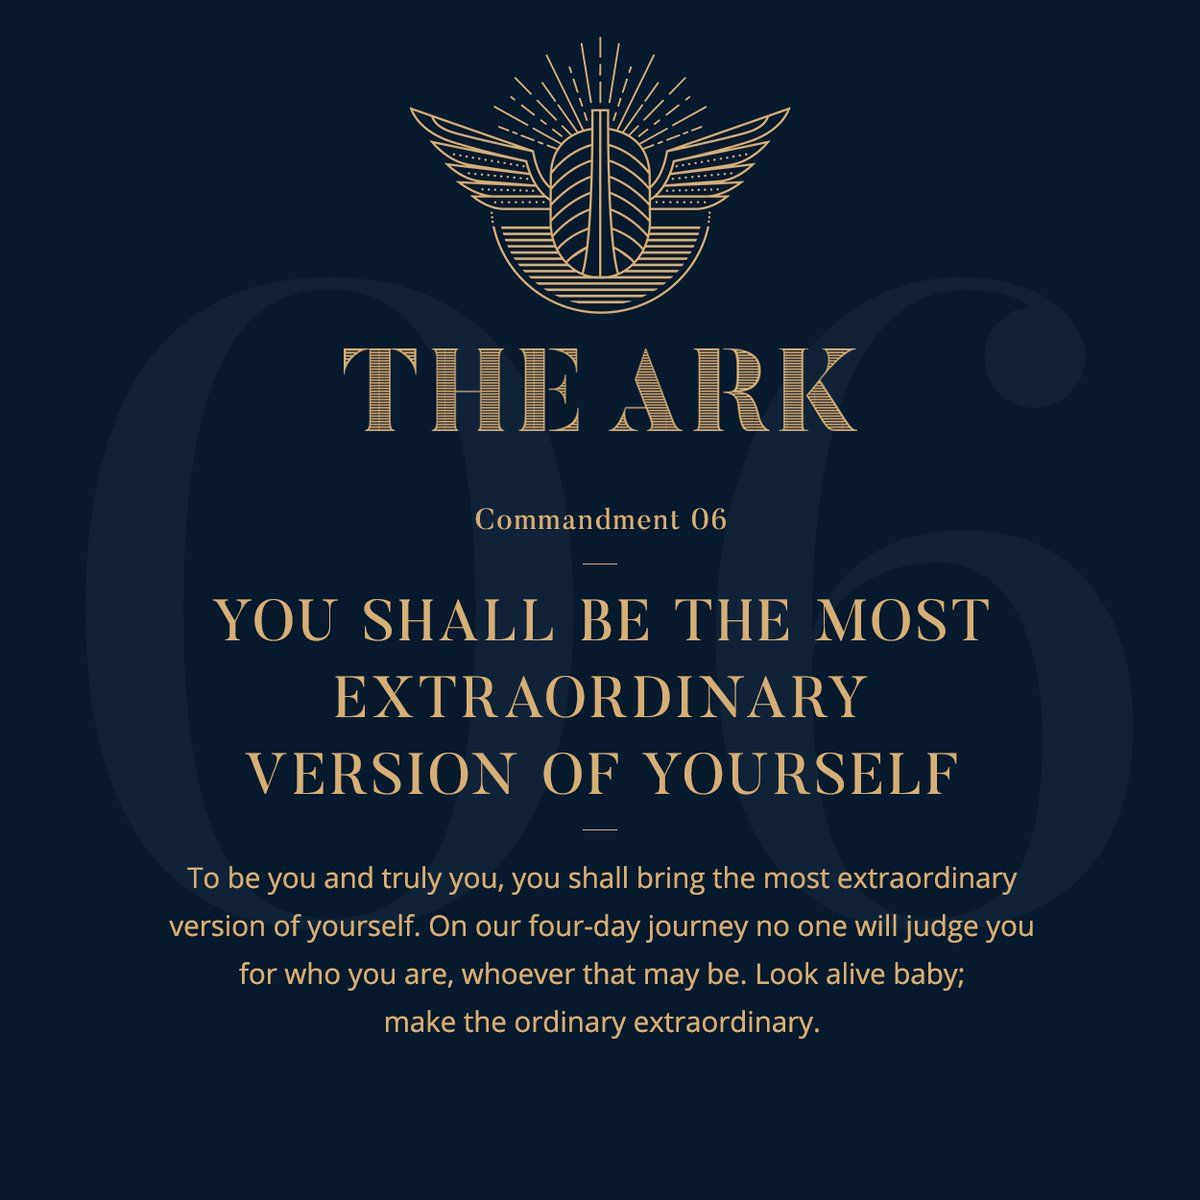 The Ark (@thearkcruise) | Twitter